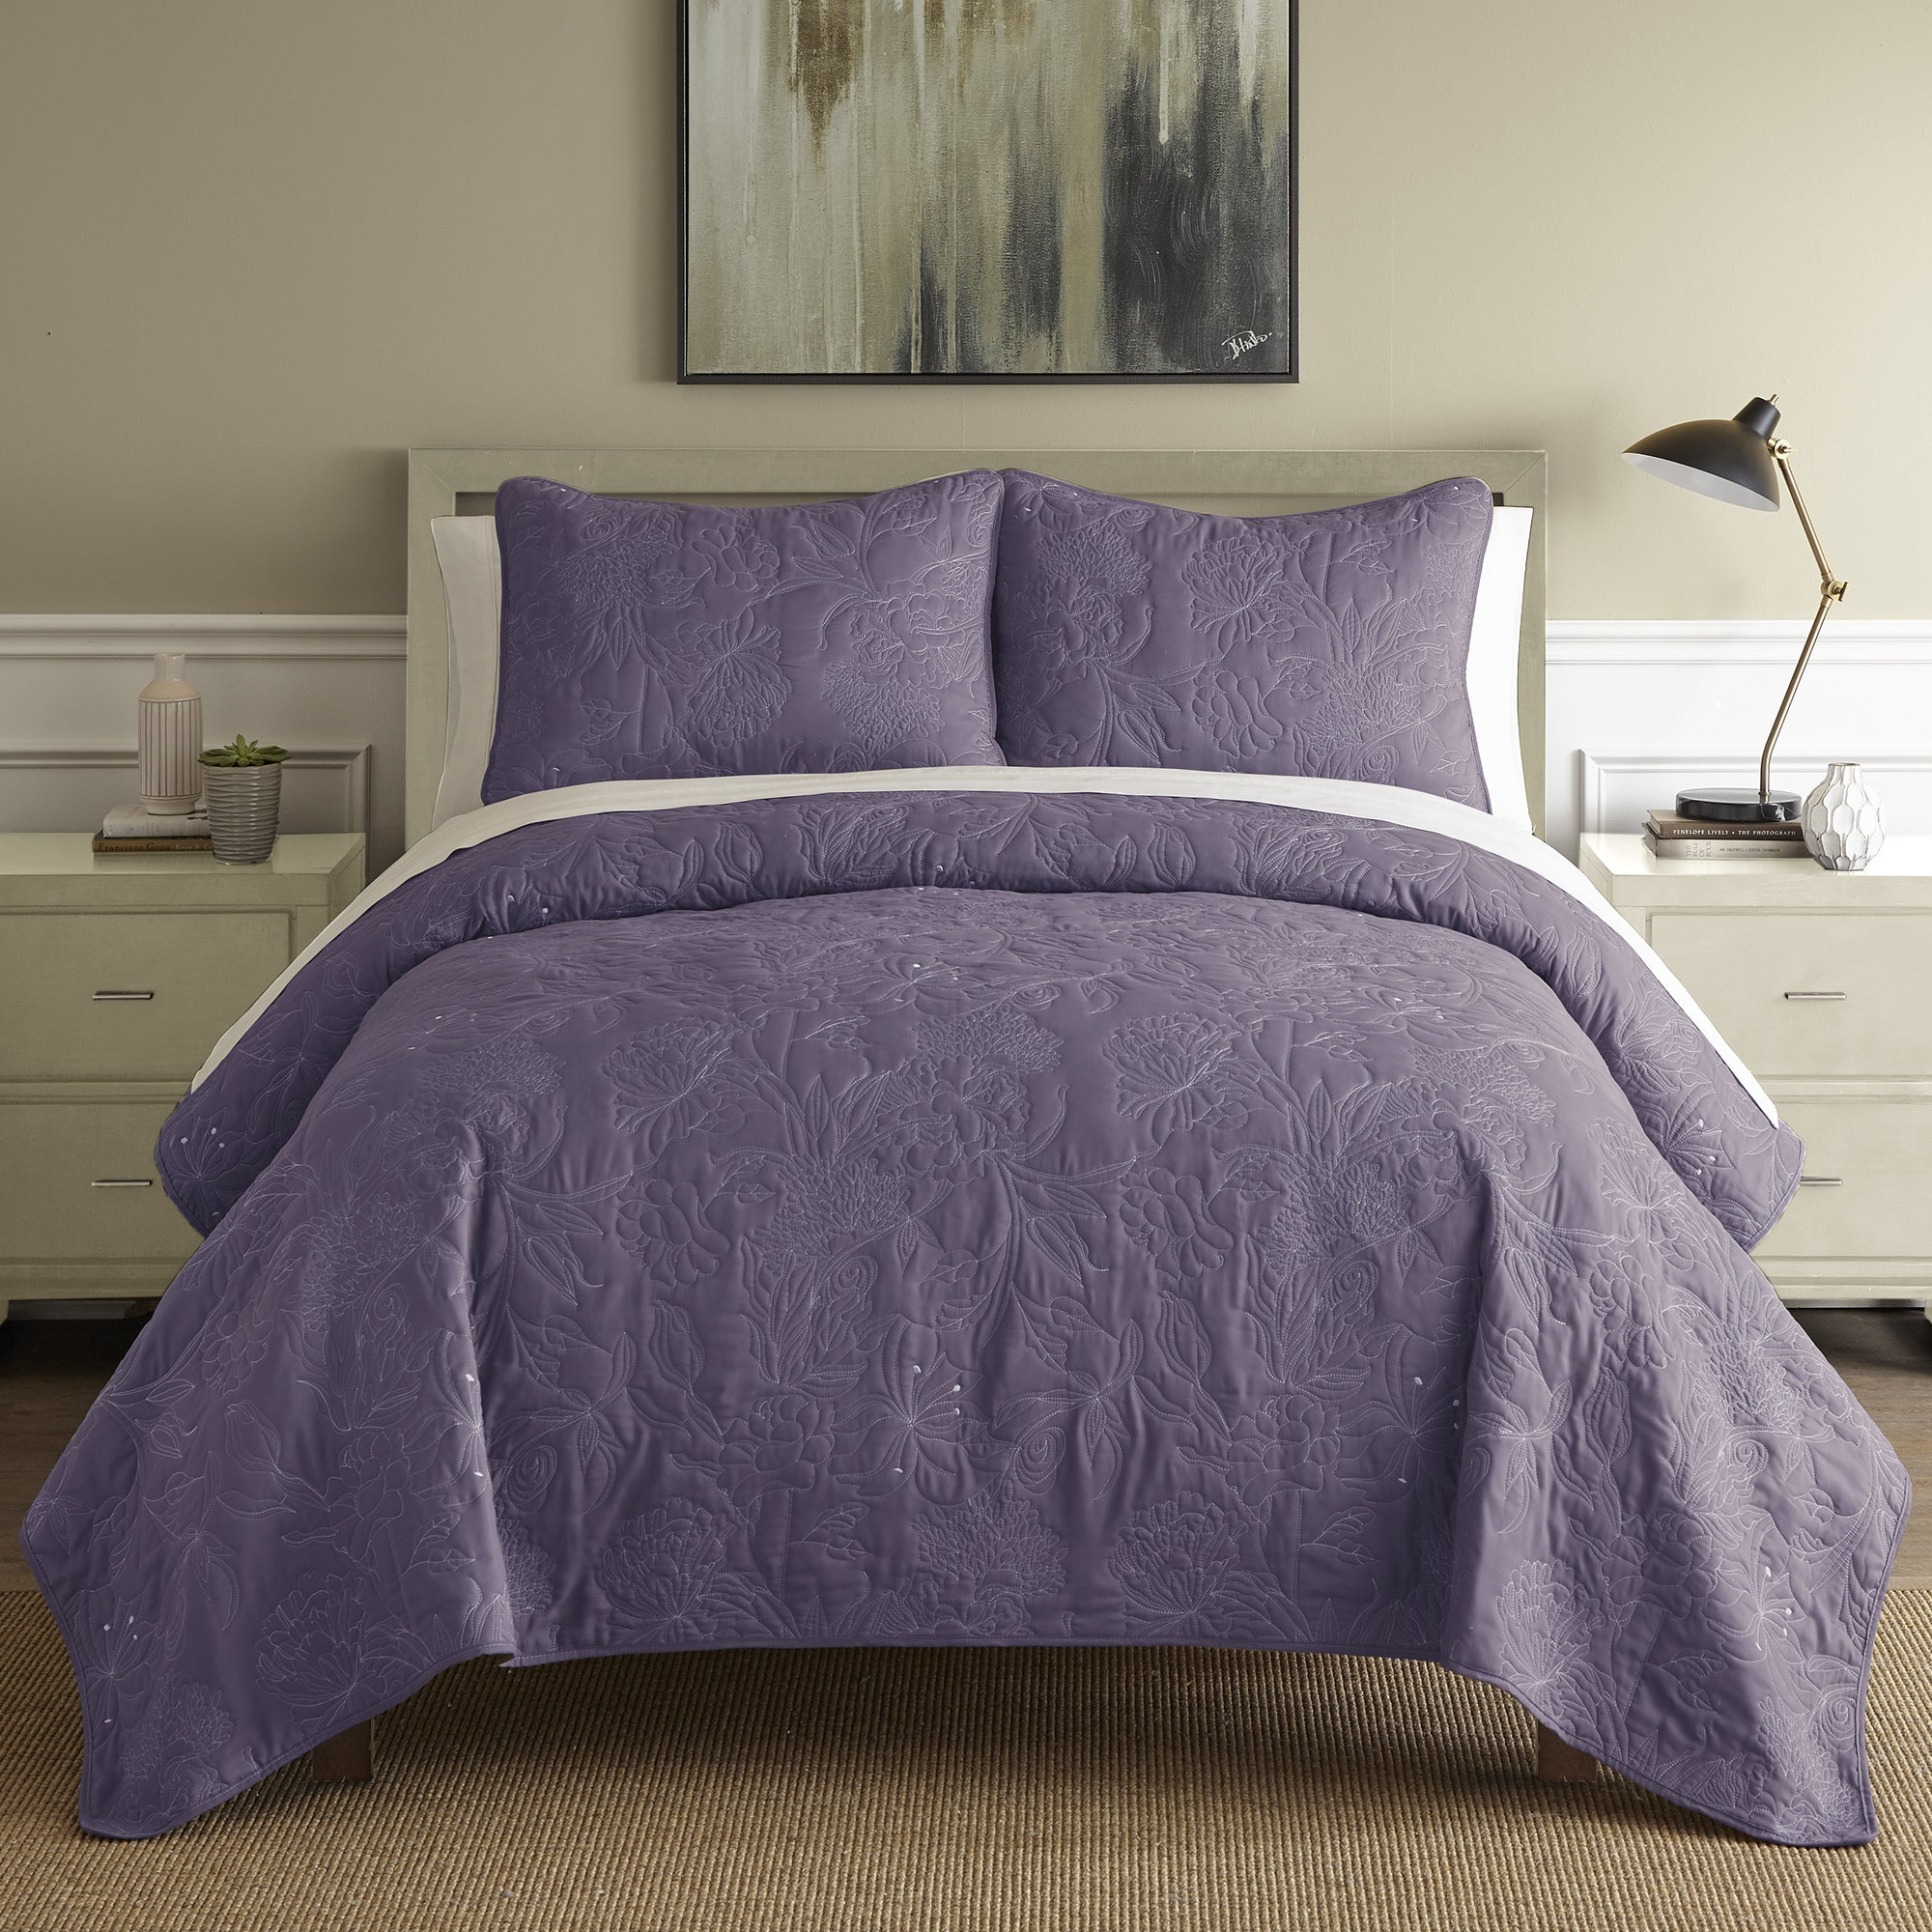 ideas wash comforter horse set beautiful quilt to purple